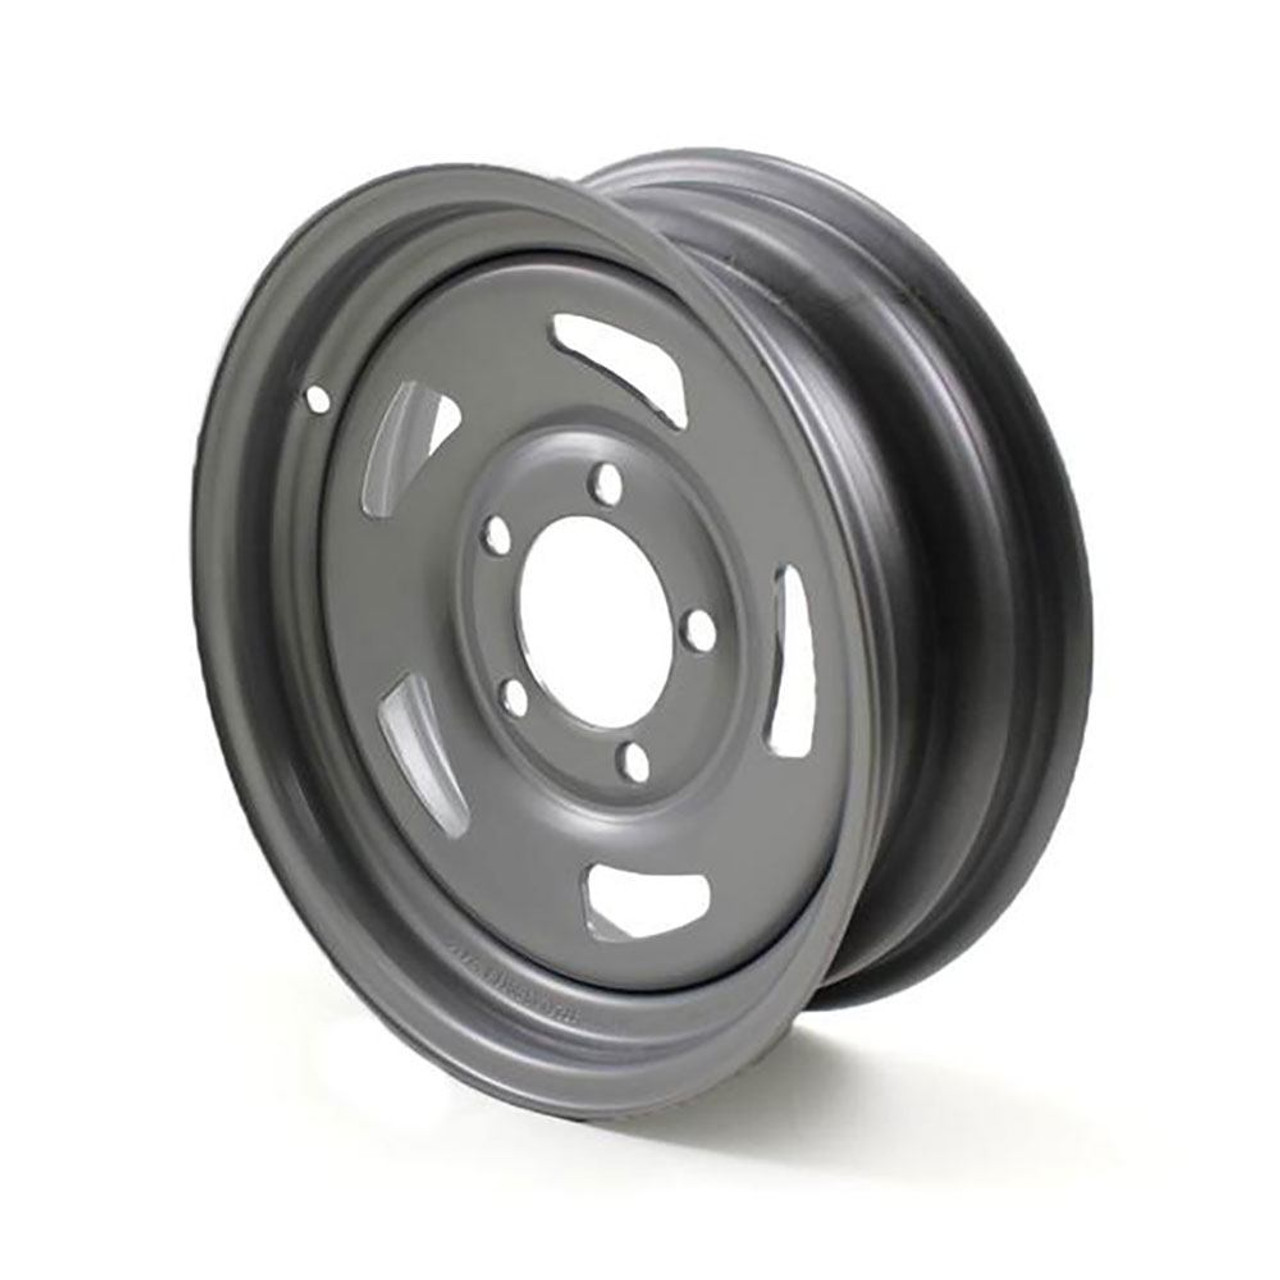 "13X4.5 5-Lug on 4.5"" Silver Blade Trailer Wheel"